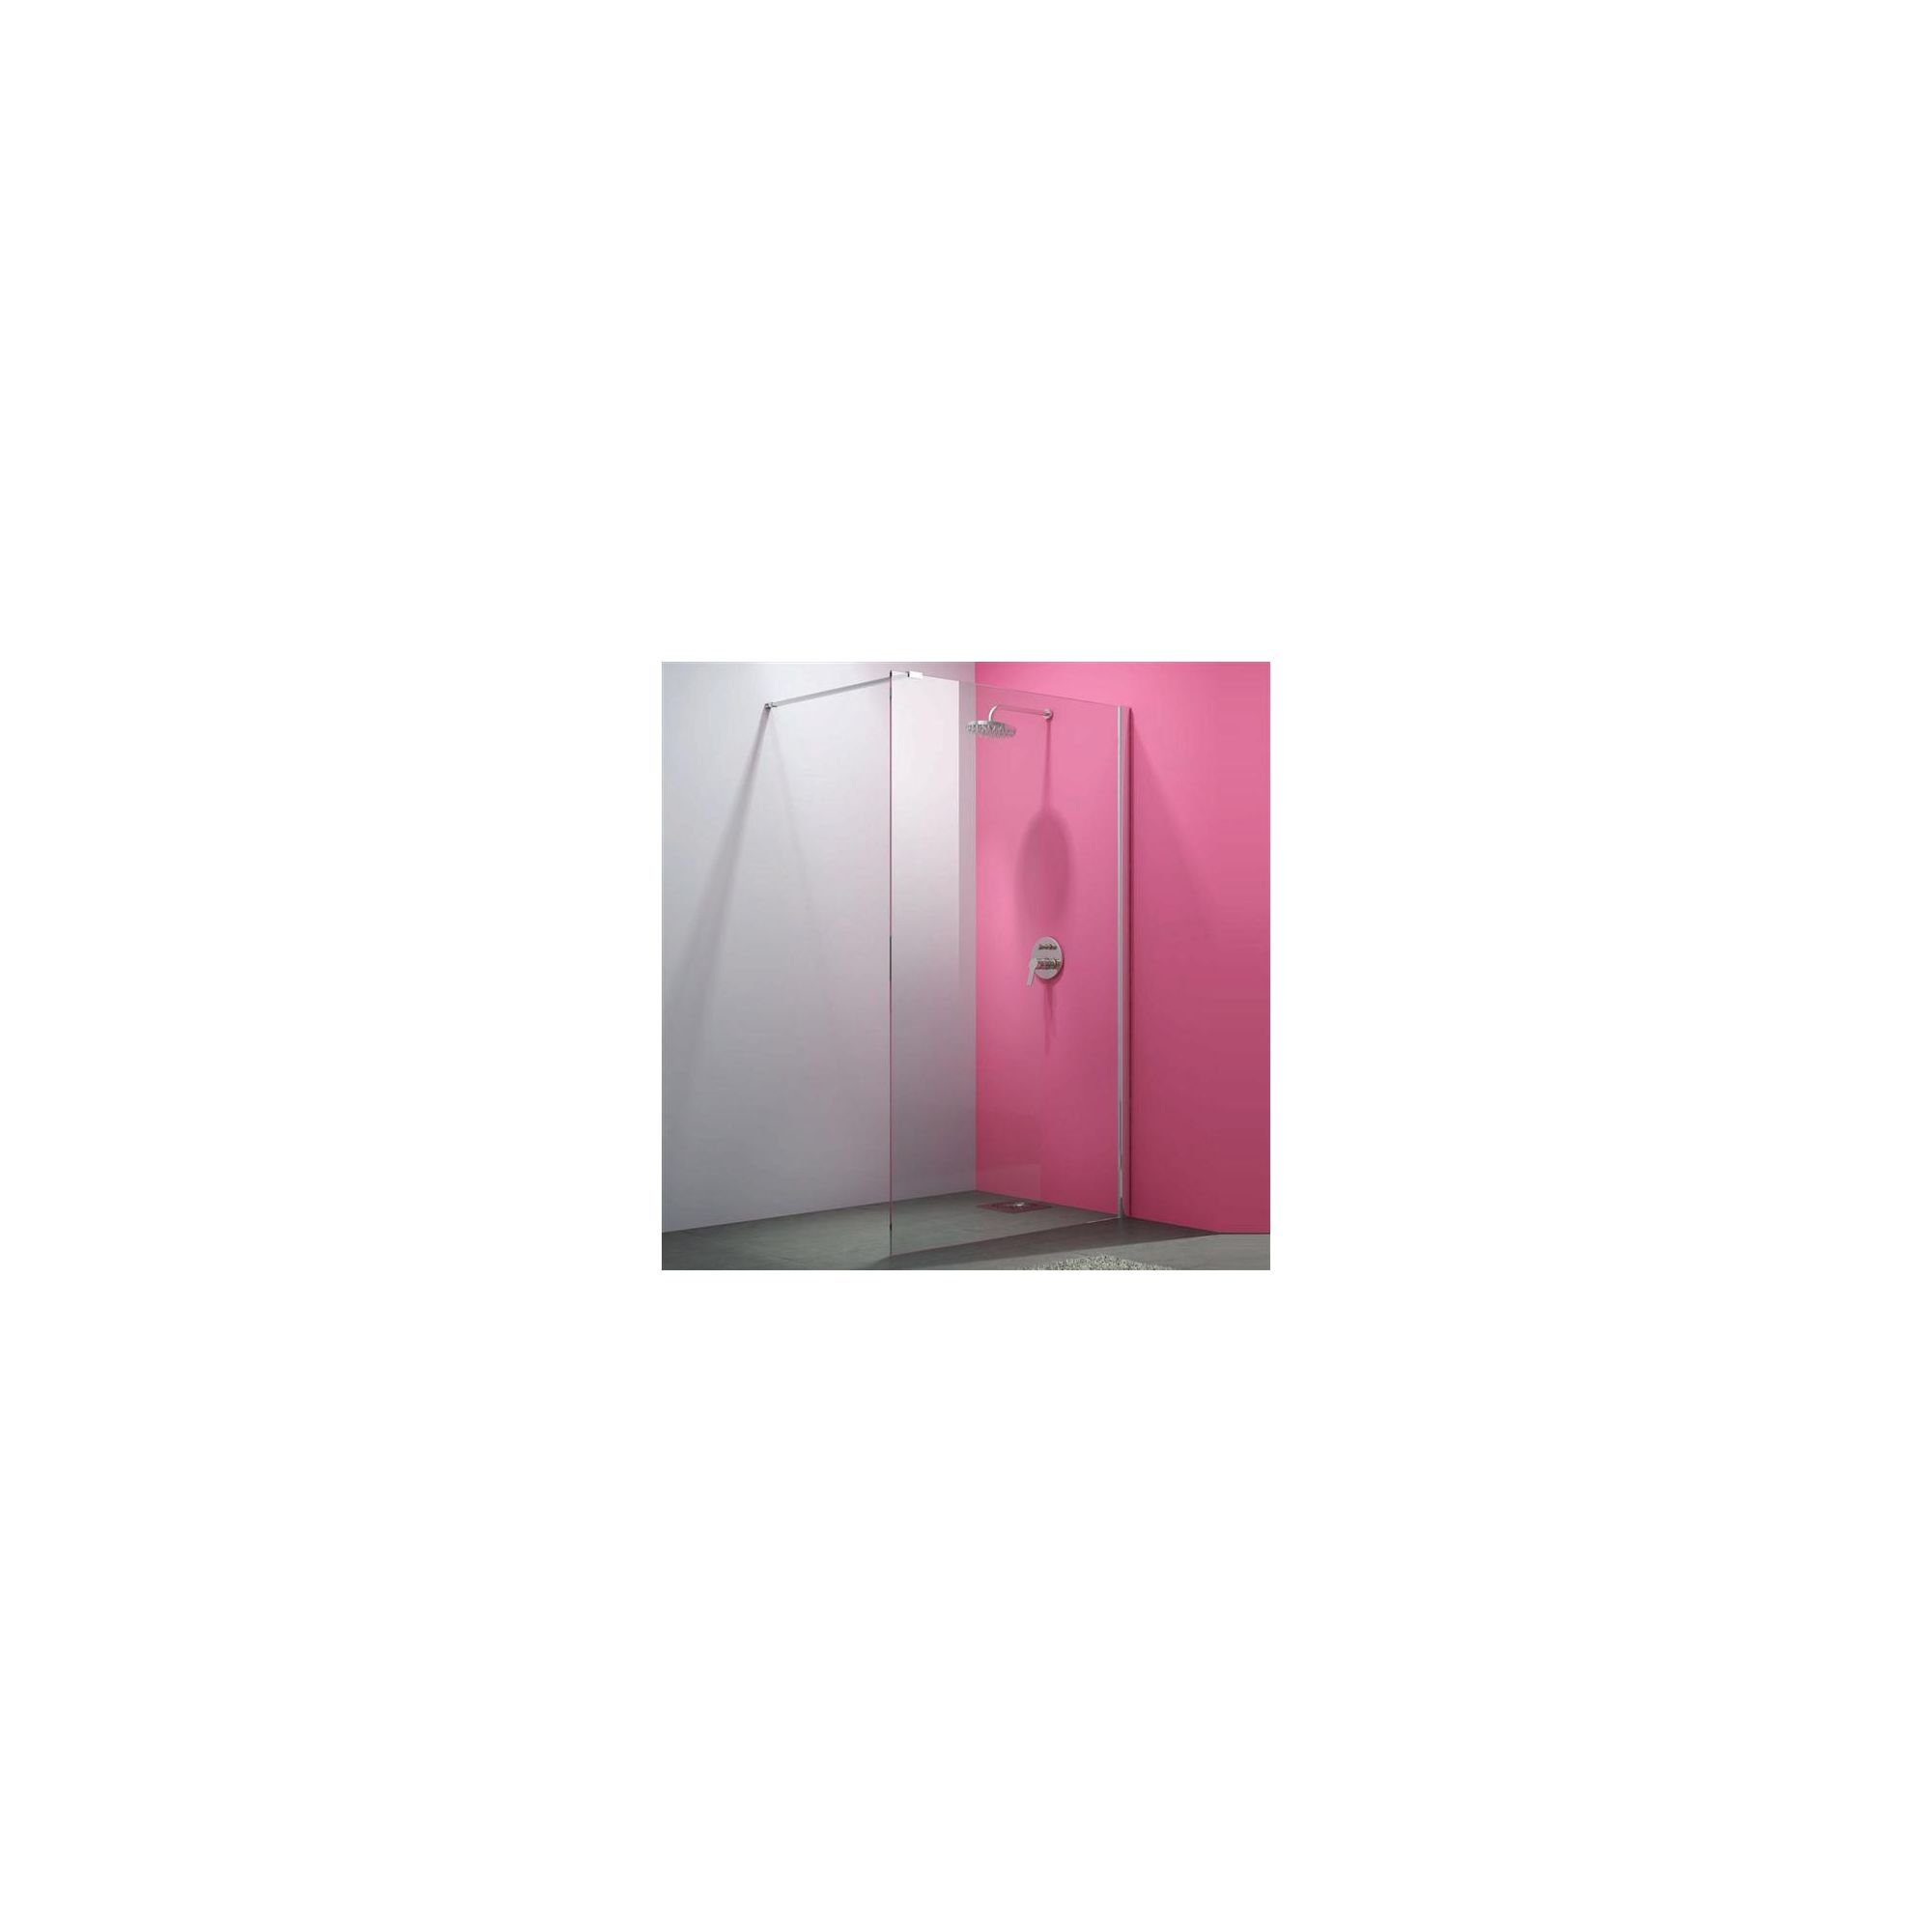 Merlyn Vivid Eight Wet Room Shower Glass Panel 800mm Wide at Tesco Direct